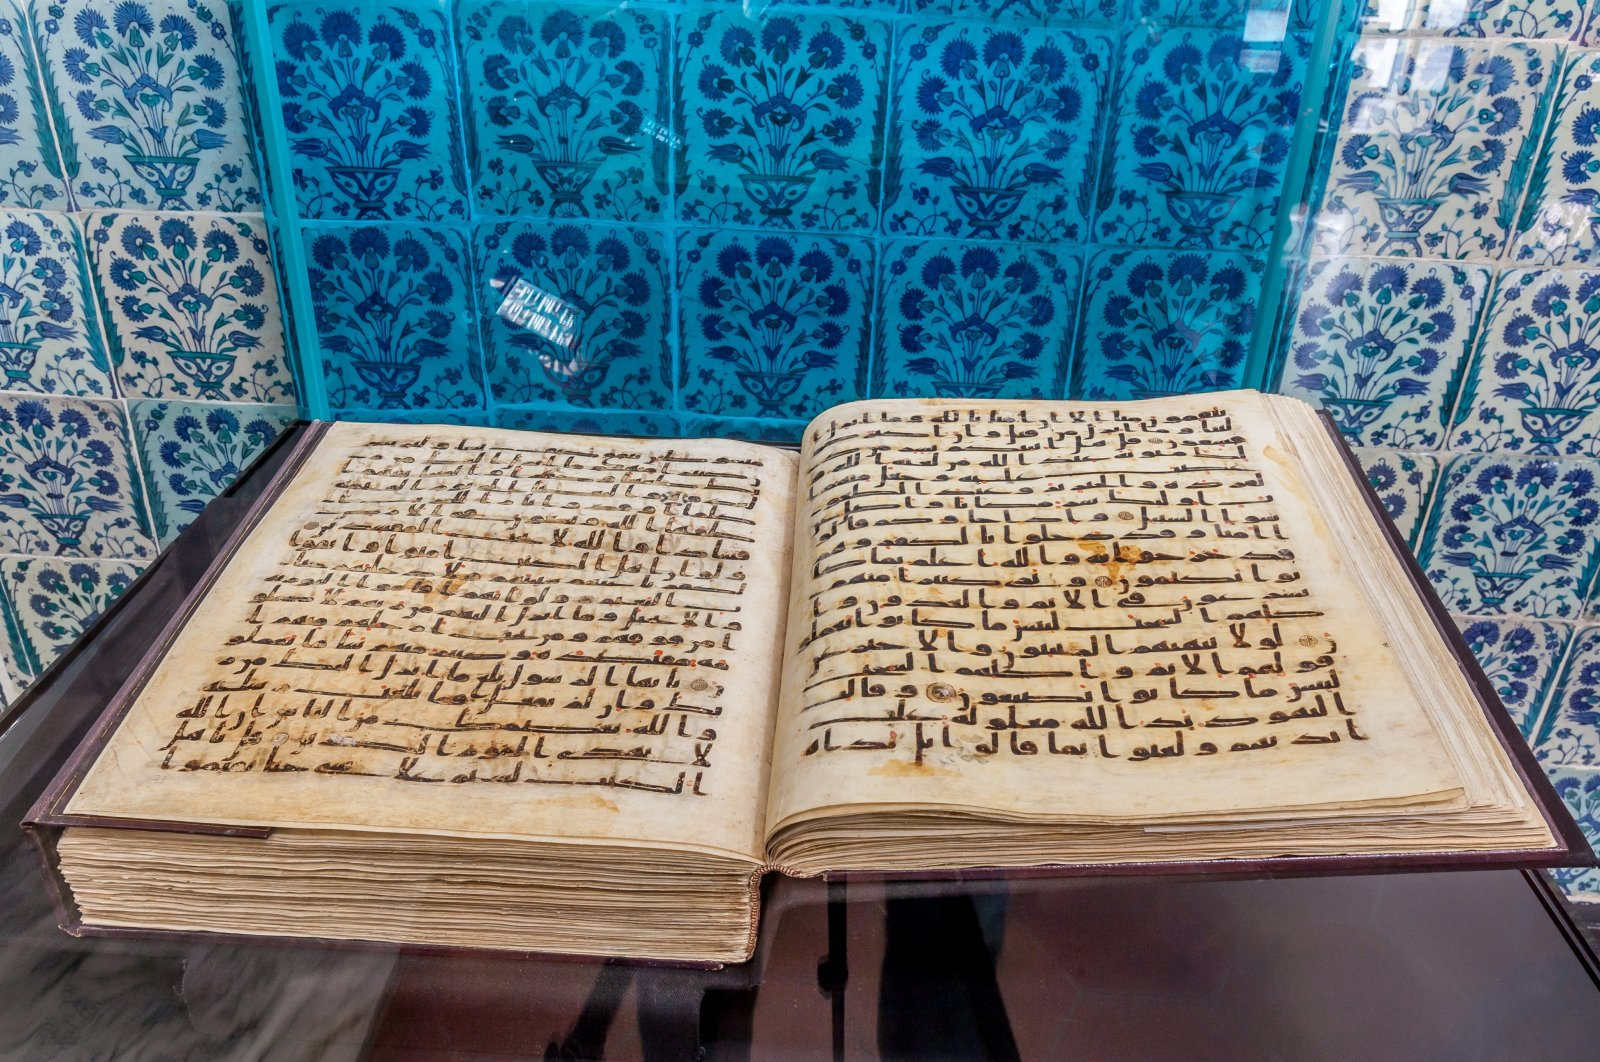 The Quran of the third caliph Uthman ibn Affan stored at the Topkapı Palace's Shrine of the Sacred Relics, Istanbul, Turkey, July 17, 2014. (Photo by Recai Kömür)